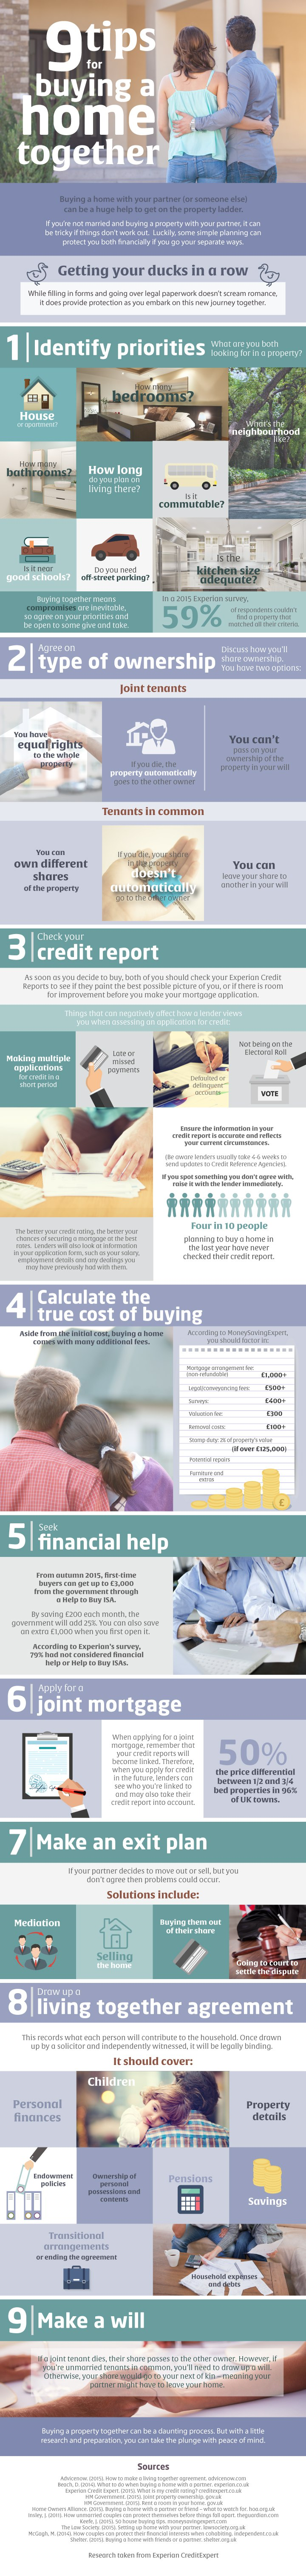 9-Tips-for-buying-a-home-with-your-partner